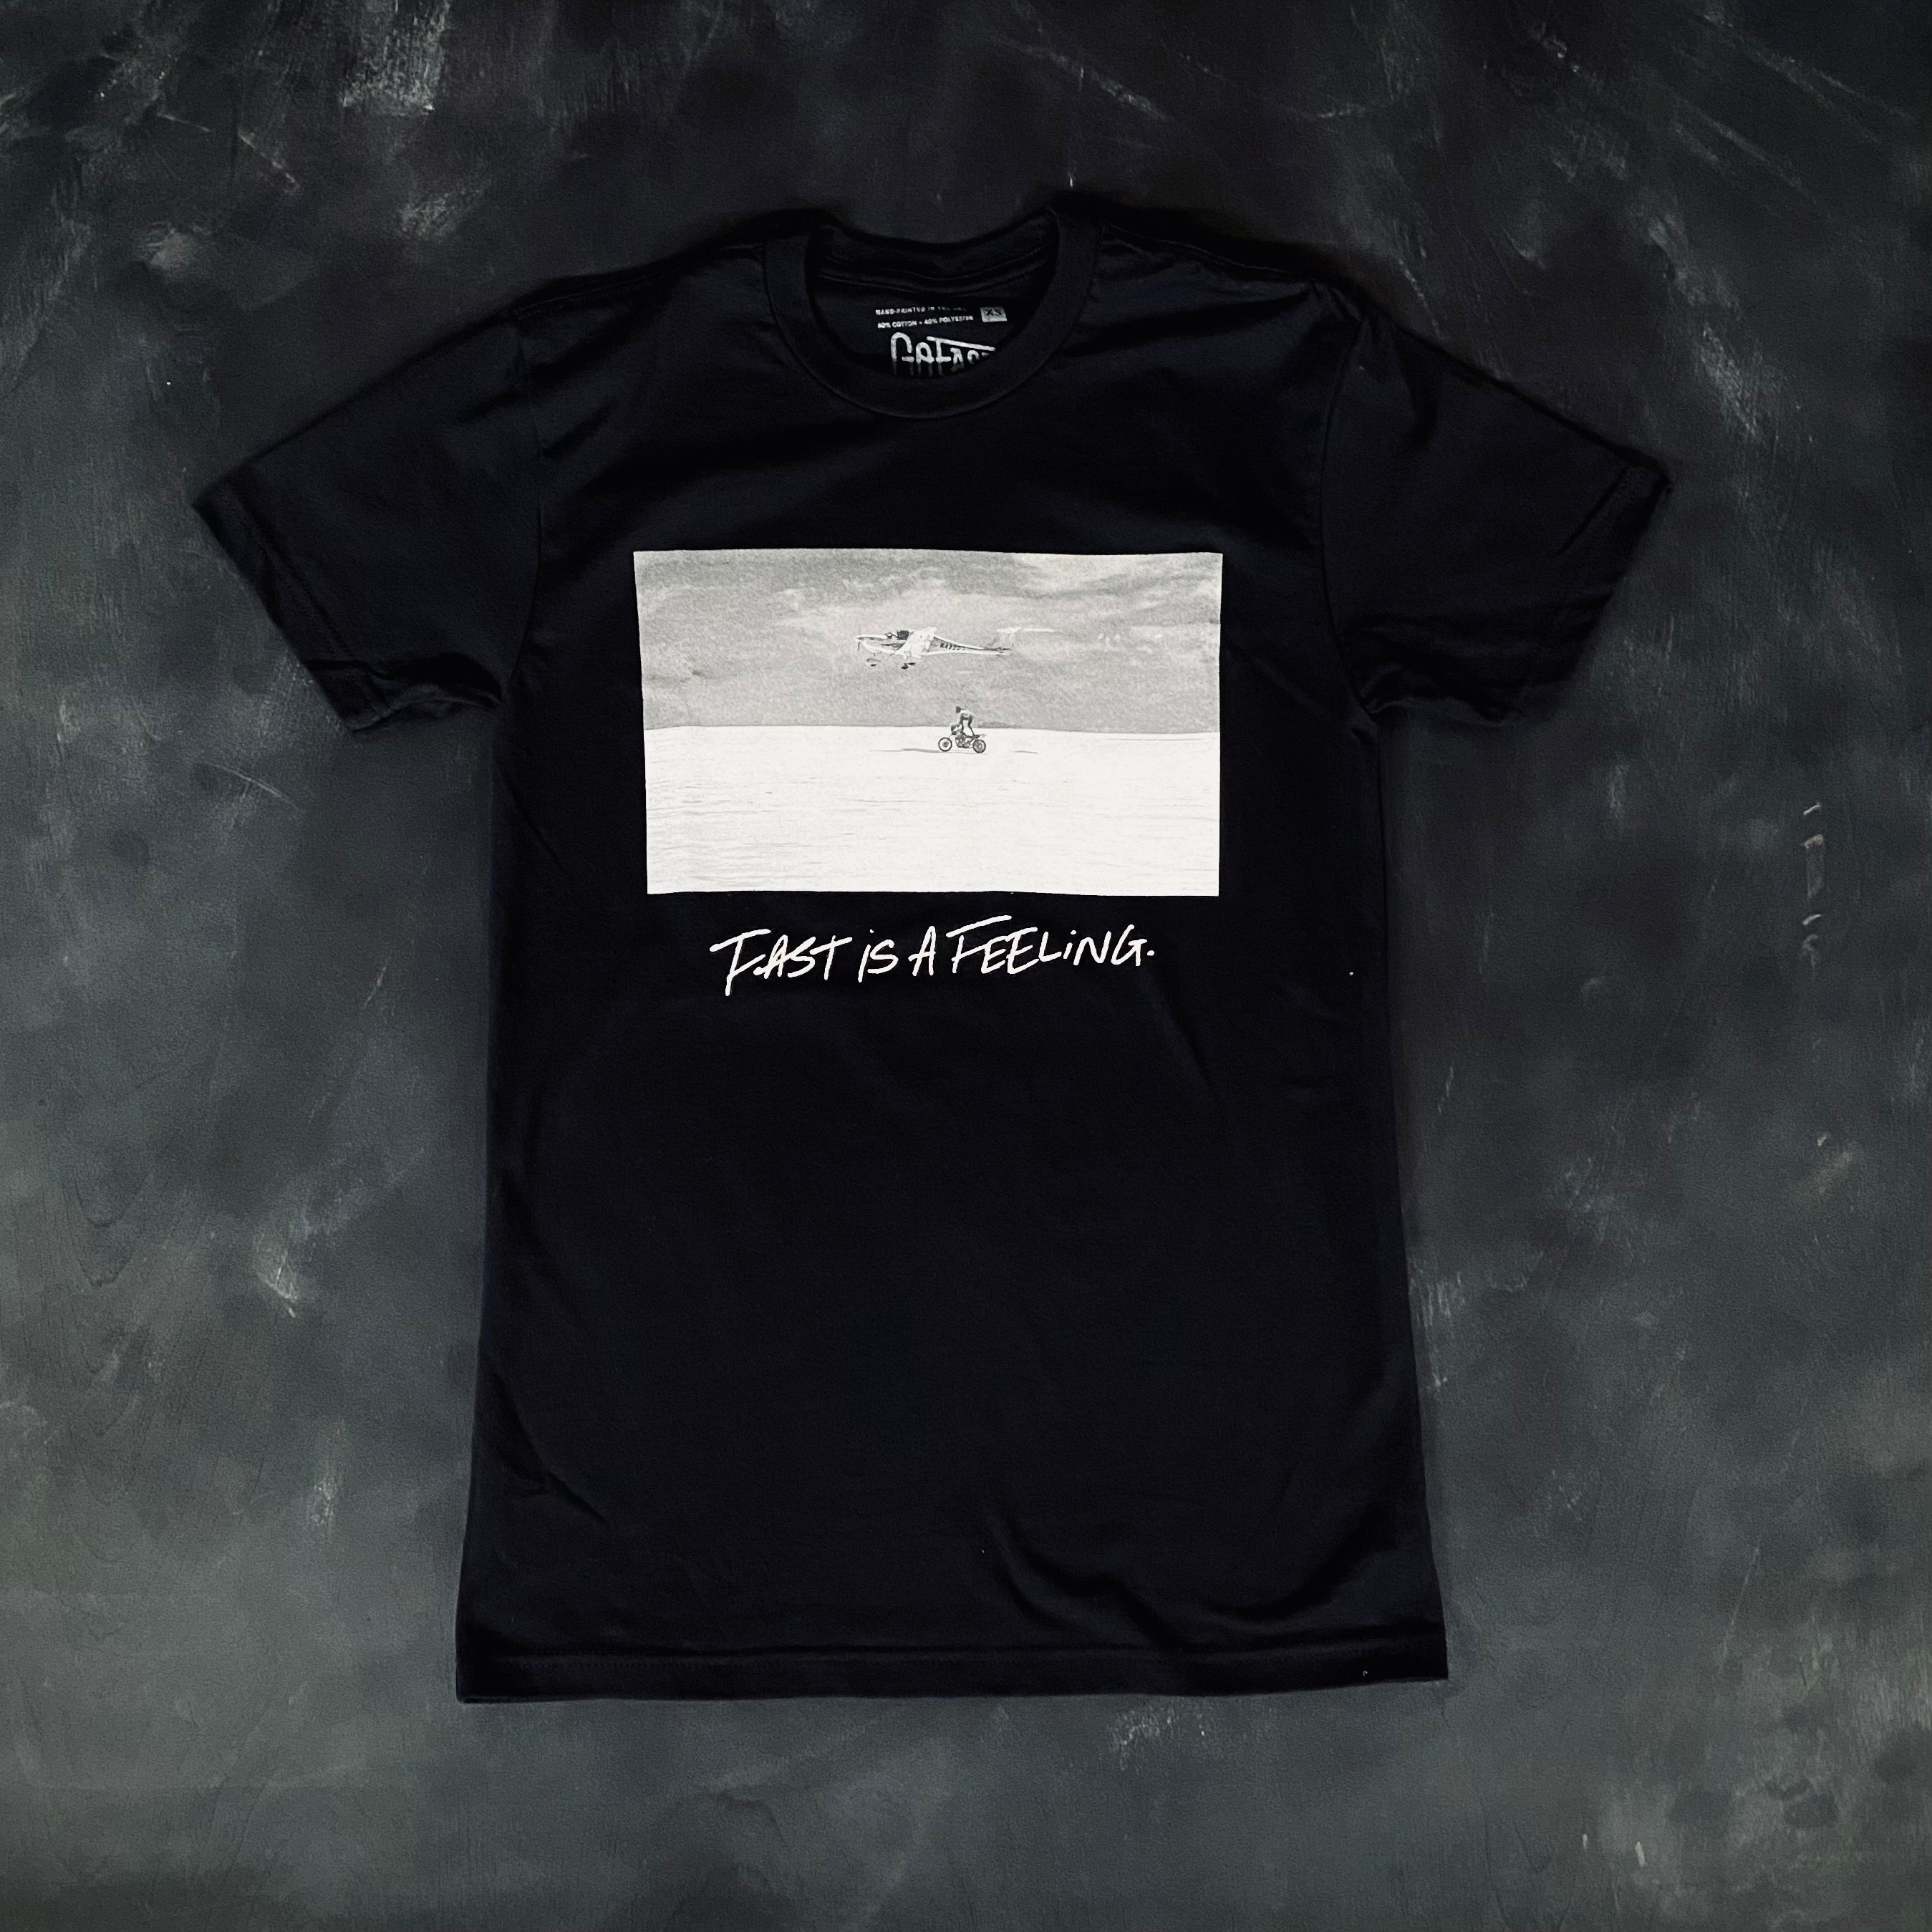 Fast Is A Feeling Graphic Tee (Limited Edition)